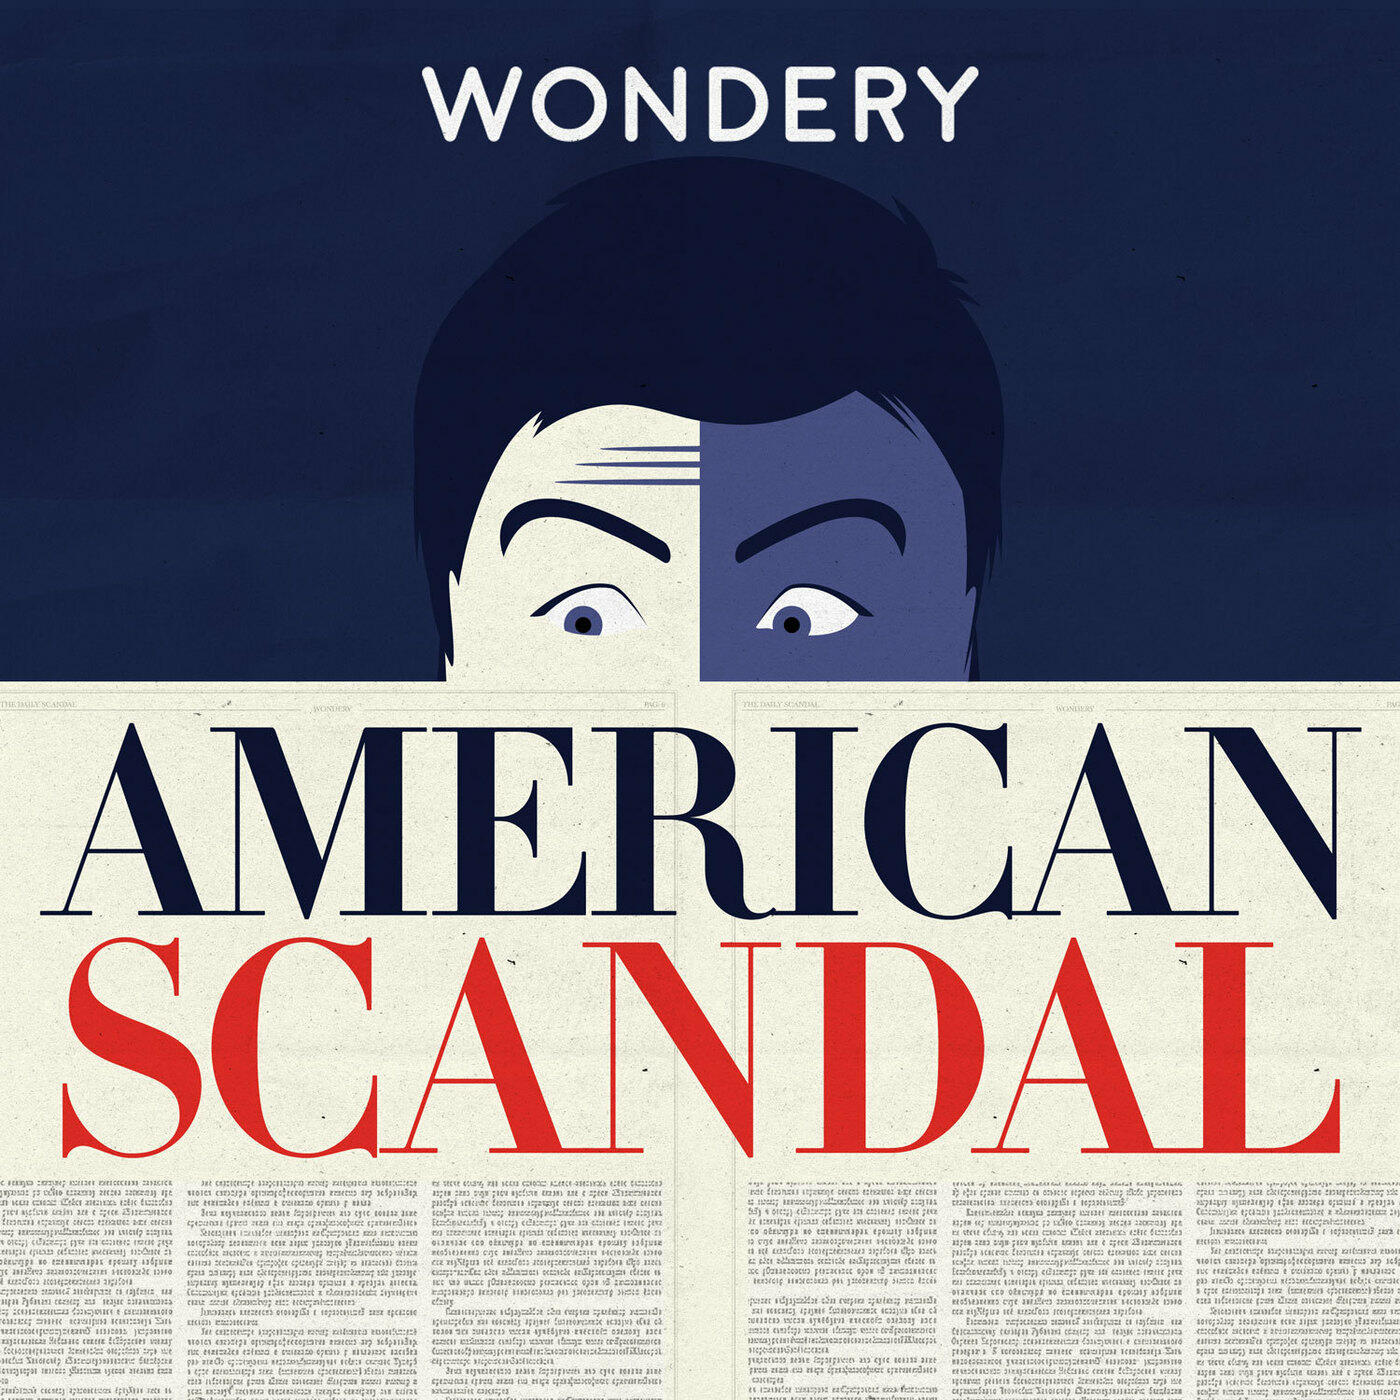 Listen to the American Scandal Episode - Exxon Valdez: Oil Meets Water  | 1 on iHeartRadio | iHeartRadio